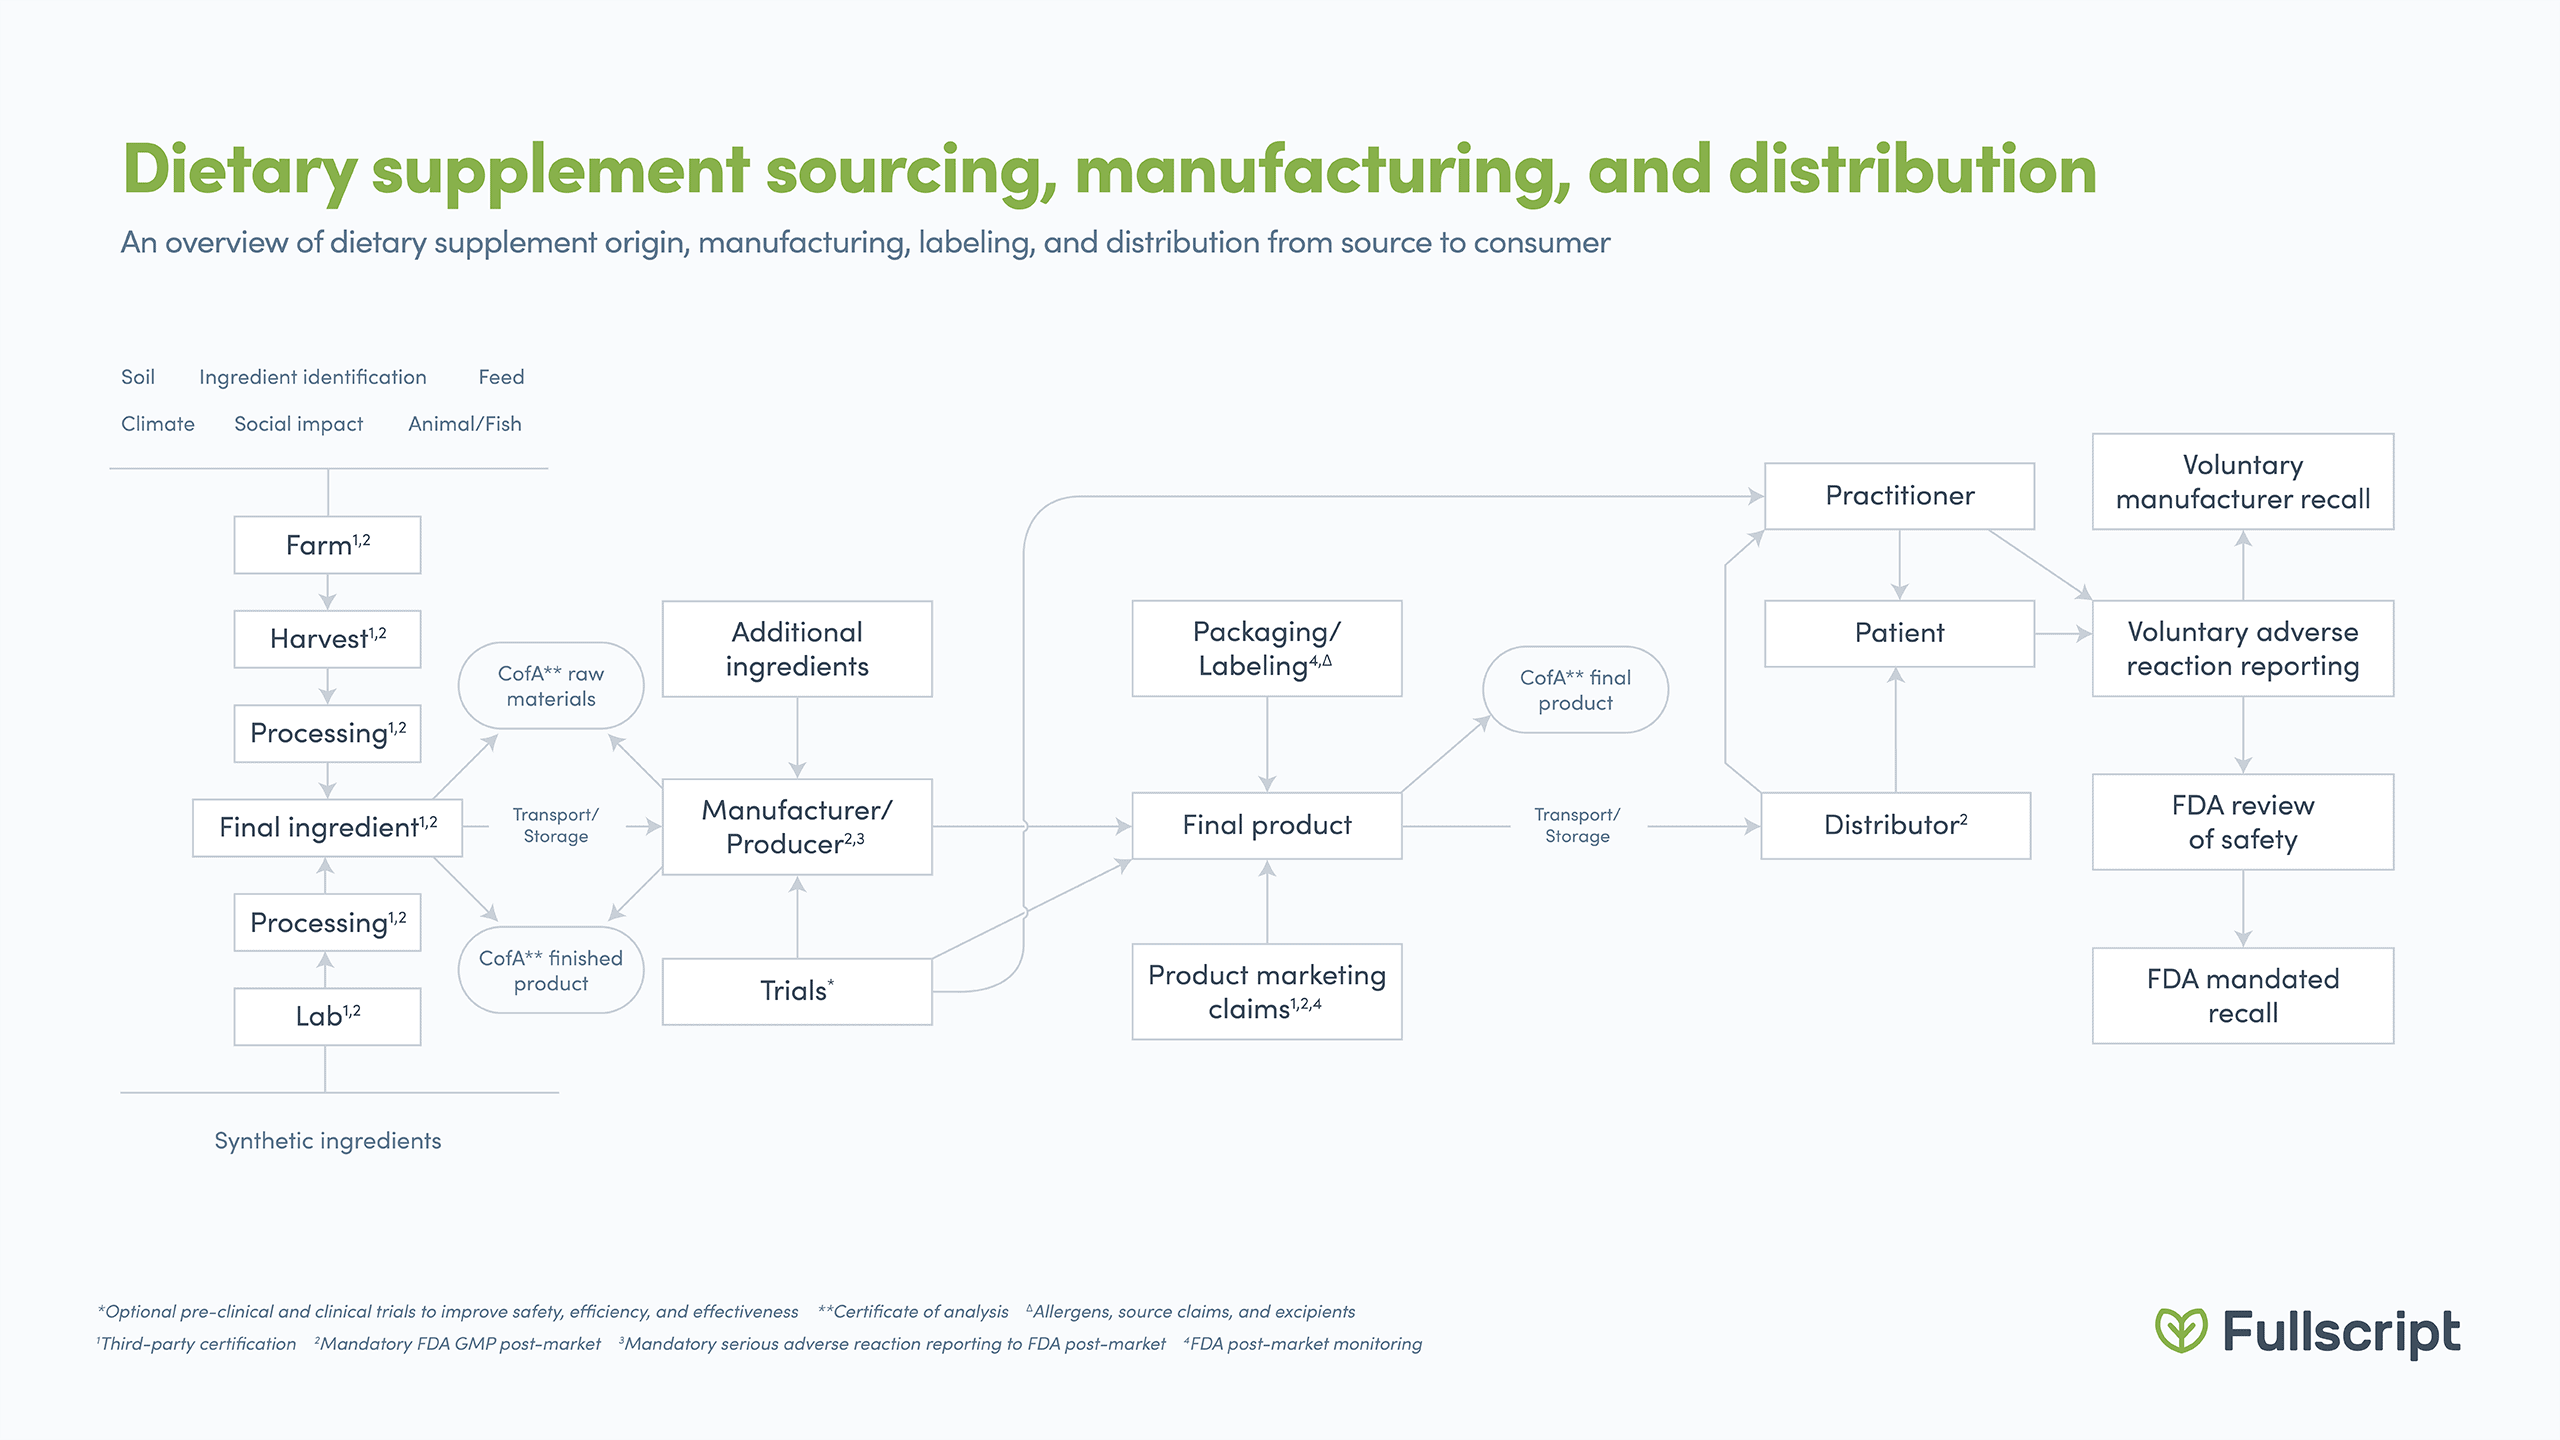 Dietary supplement sourcing, manufacturing, and distribution infographic